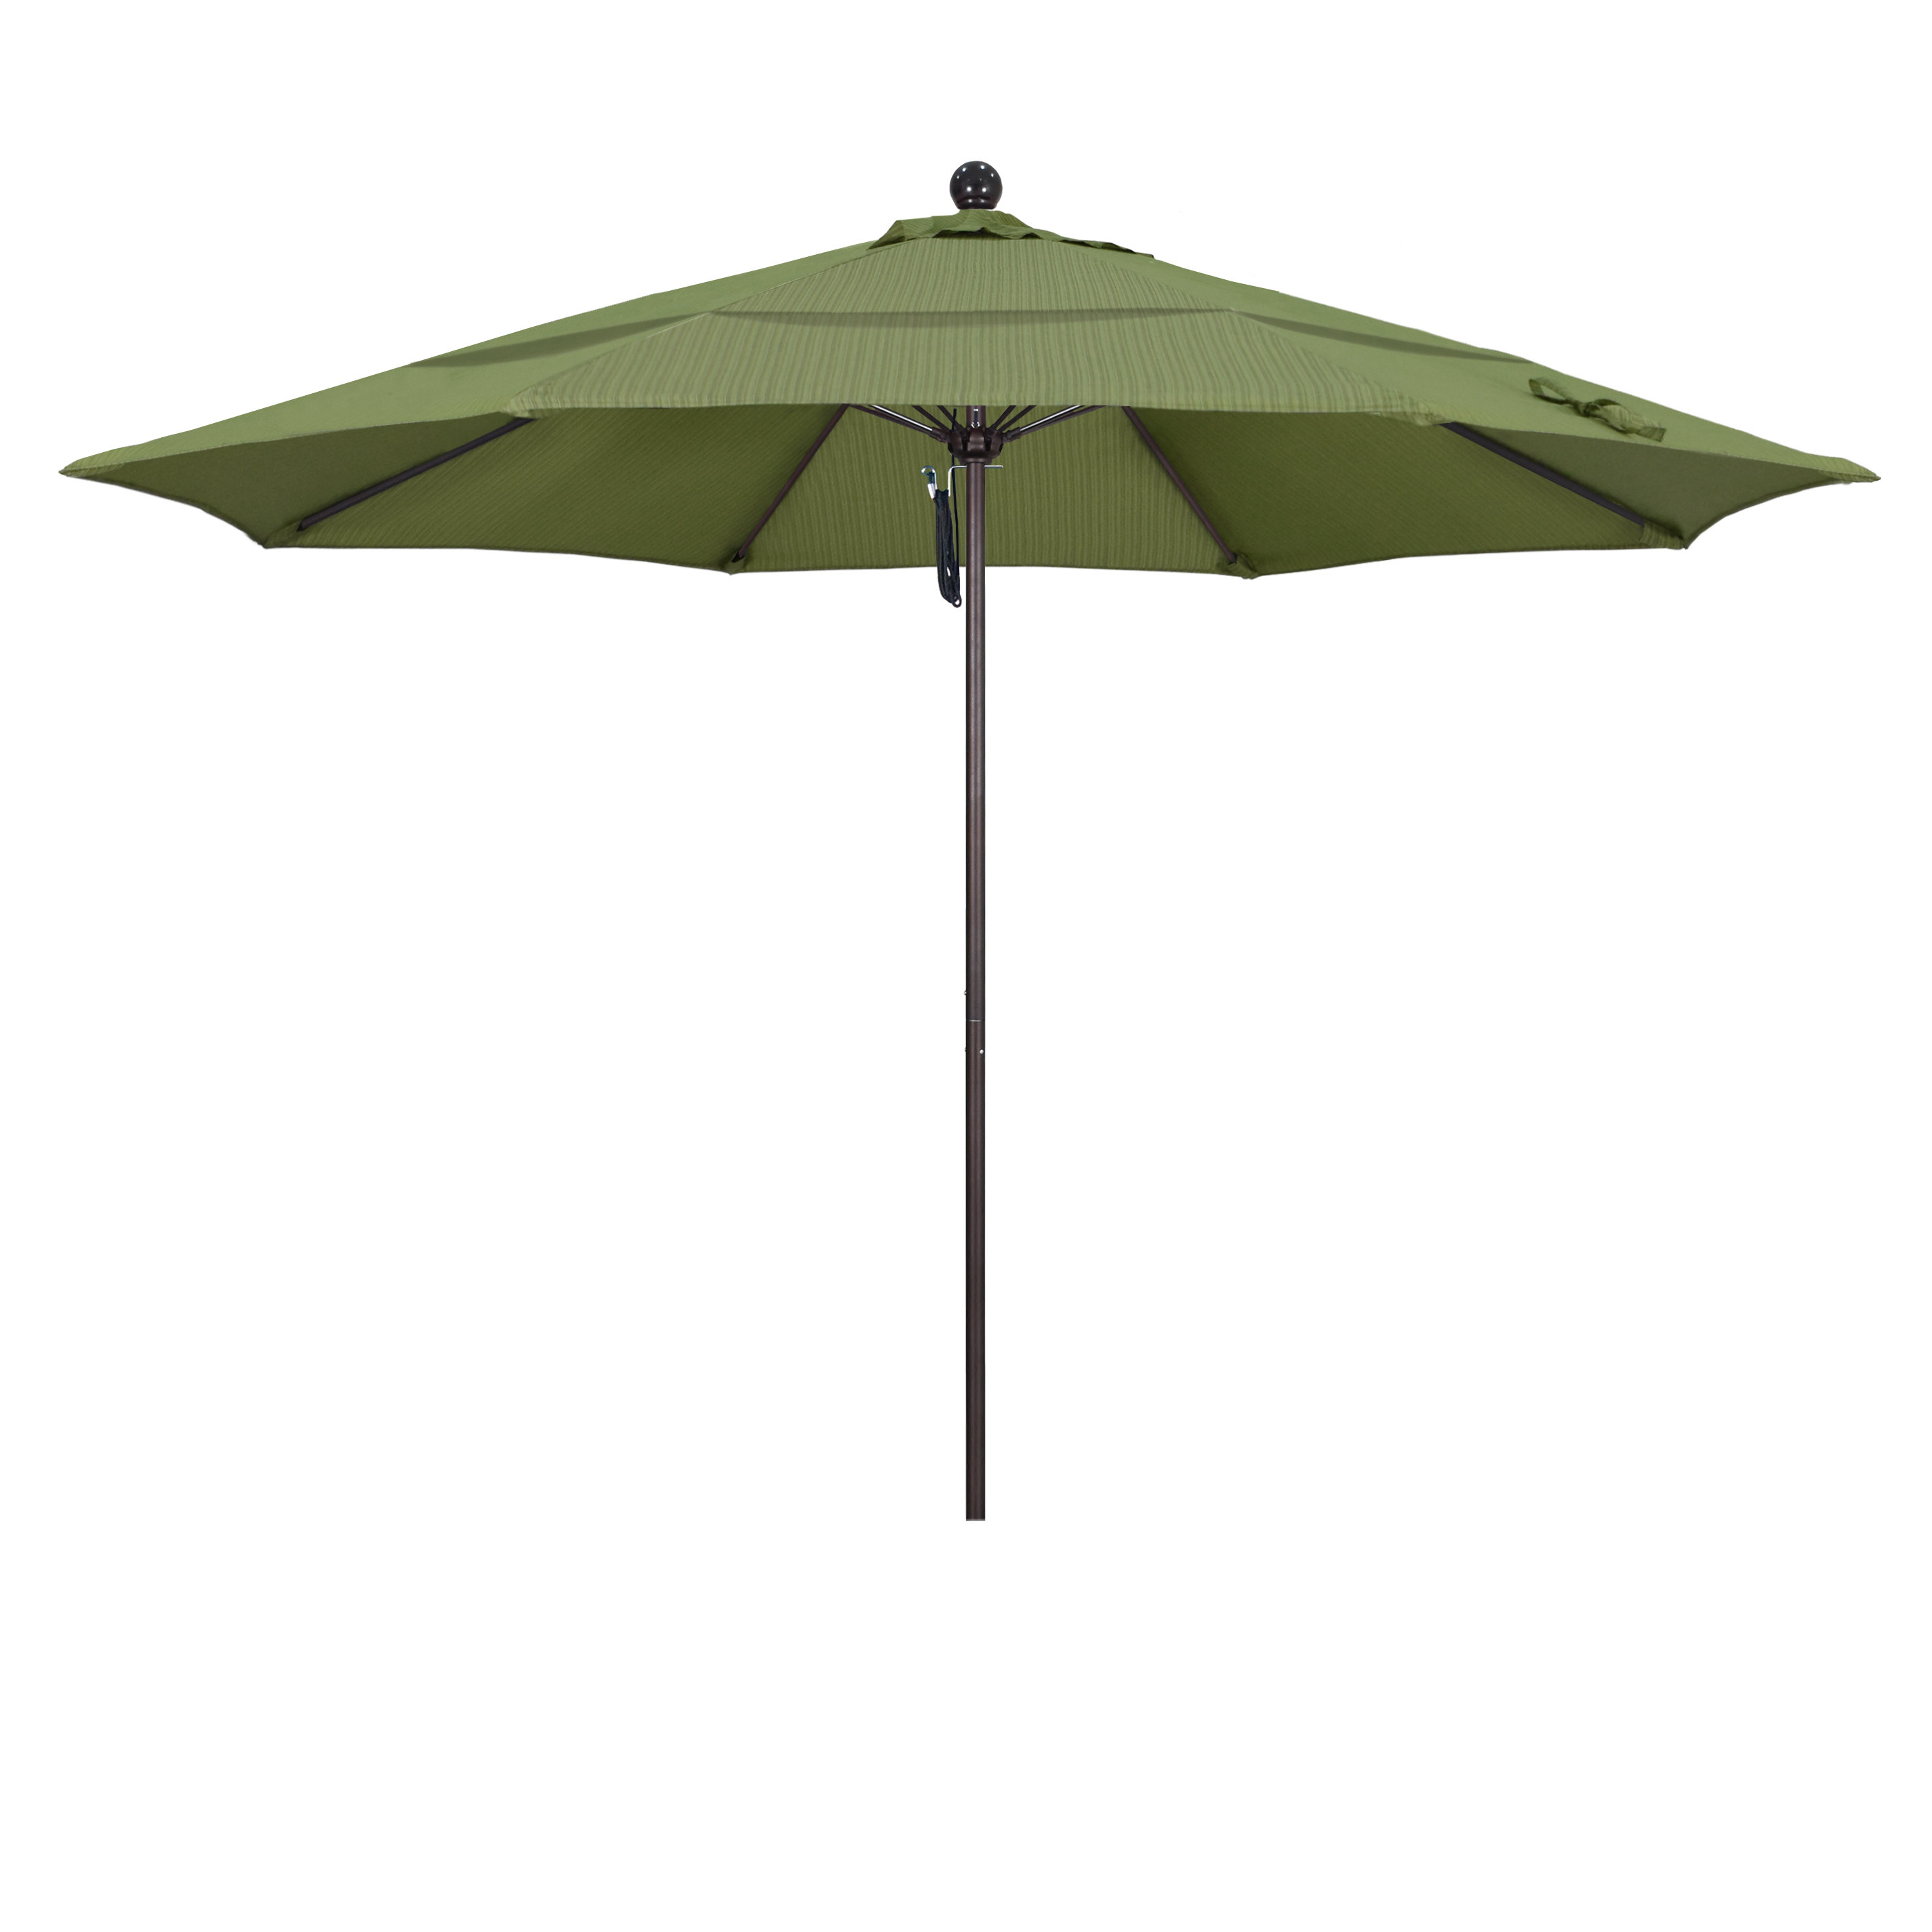 Benson 11' Market Umbrella For Latest Lanai Market Umbrellas (View 6 of 20)